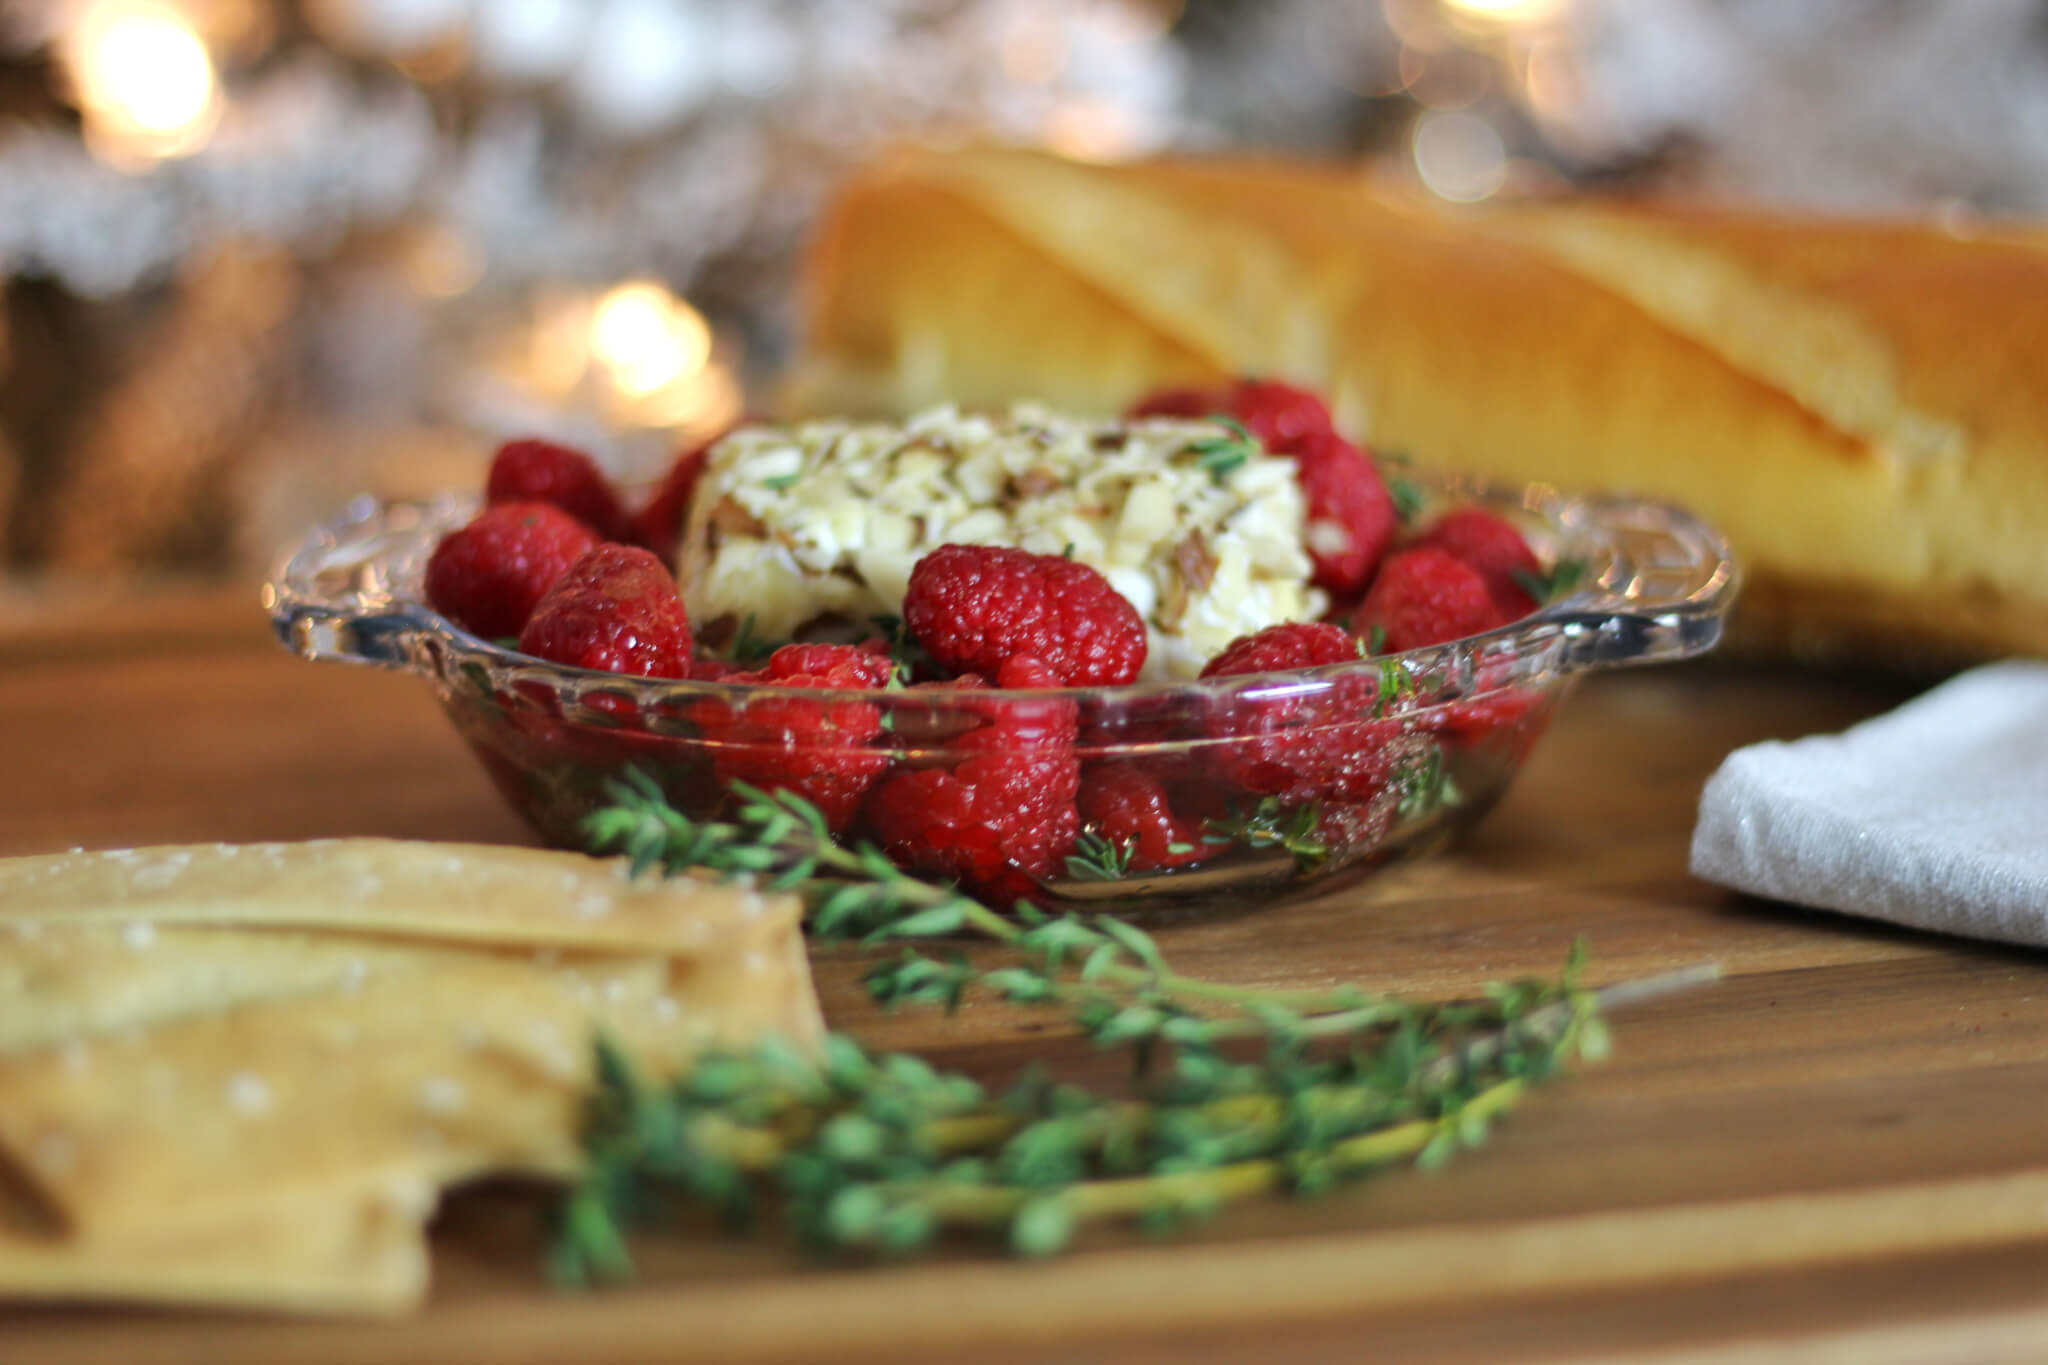 Raspberry Recipes Baked Goat Cheese and Balsamic Raspberry Dip